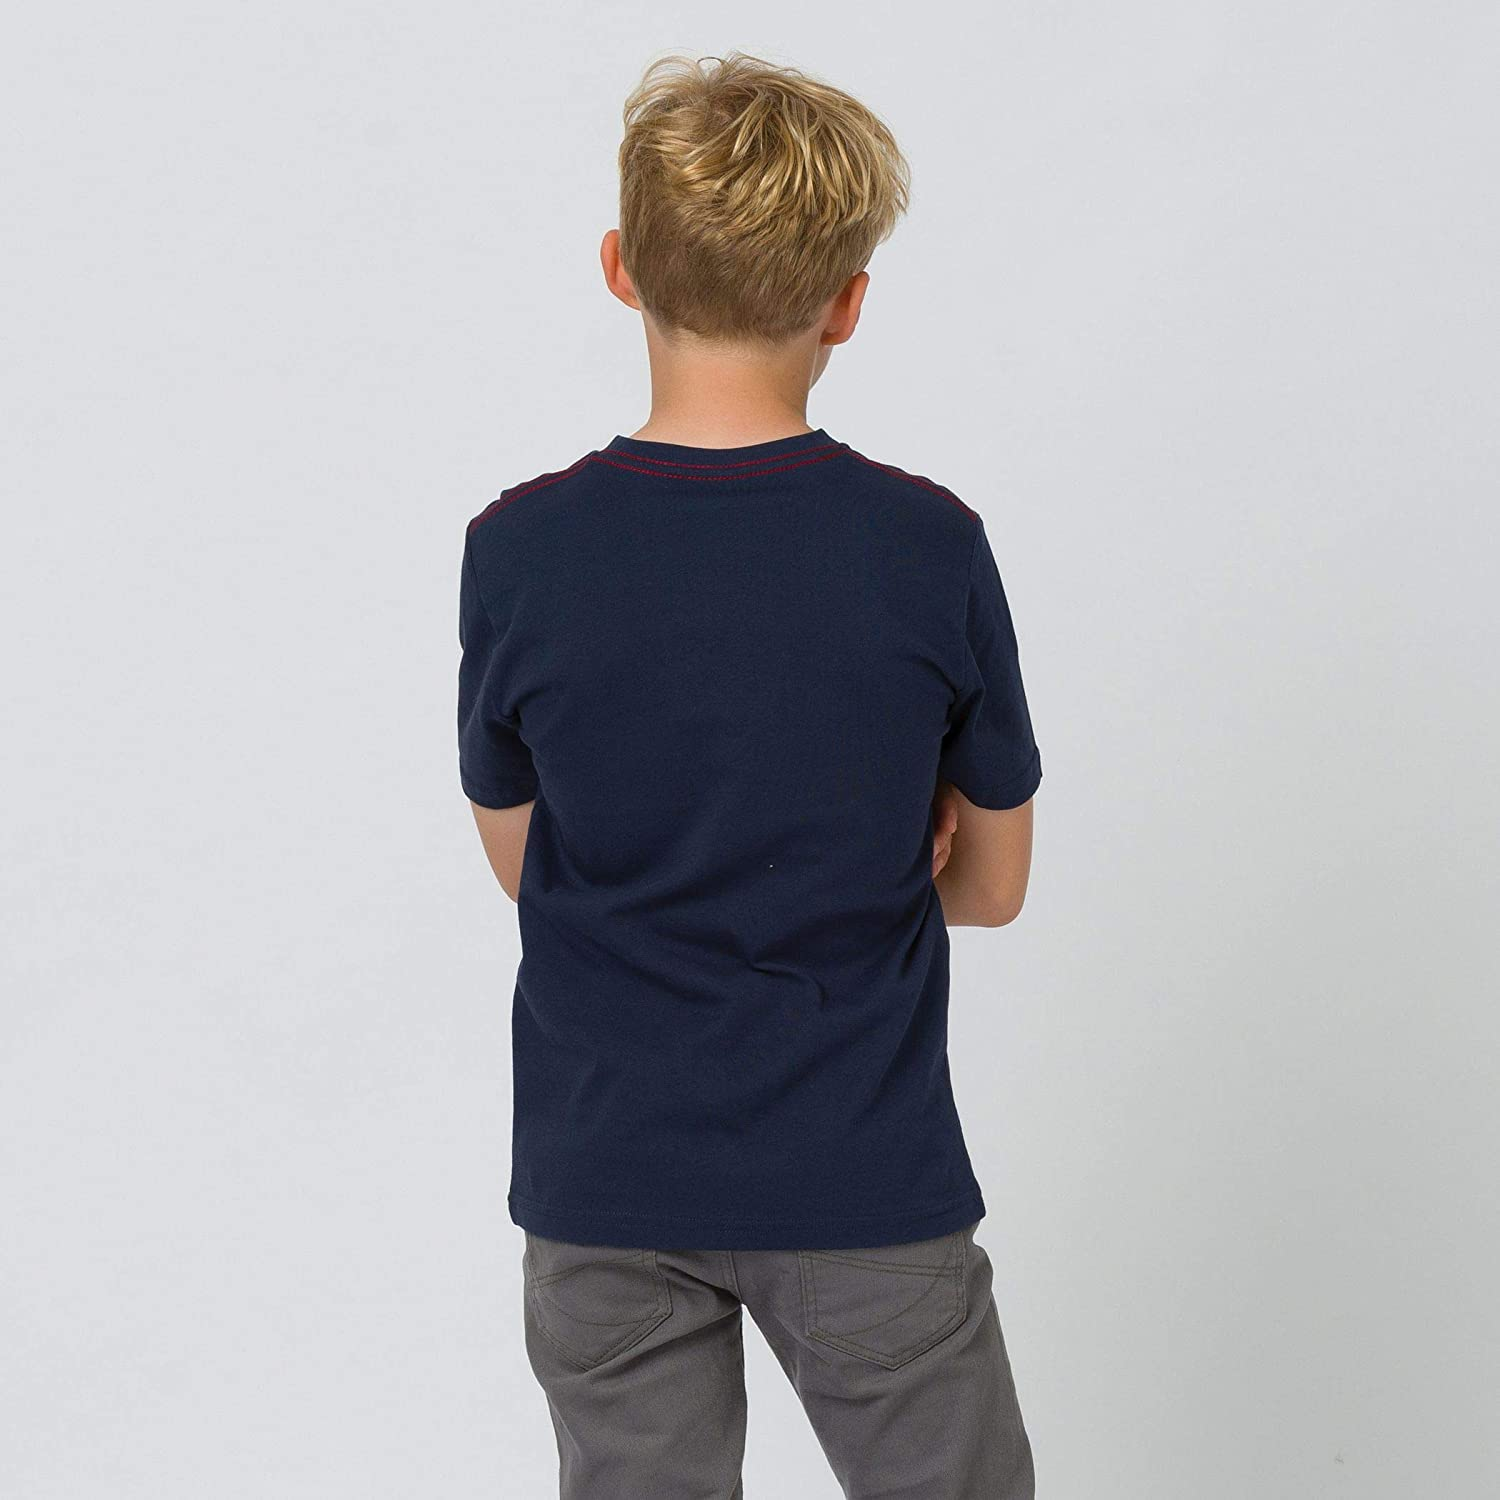 Navy Animal Boys Tabo Graphic Short Sleeve Crew Neck T-Shirt